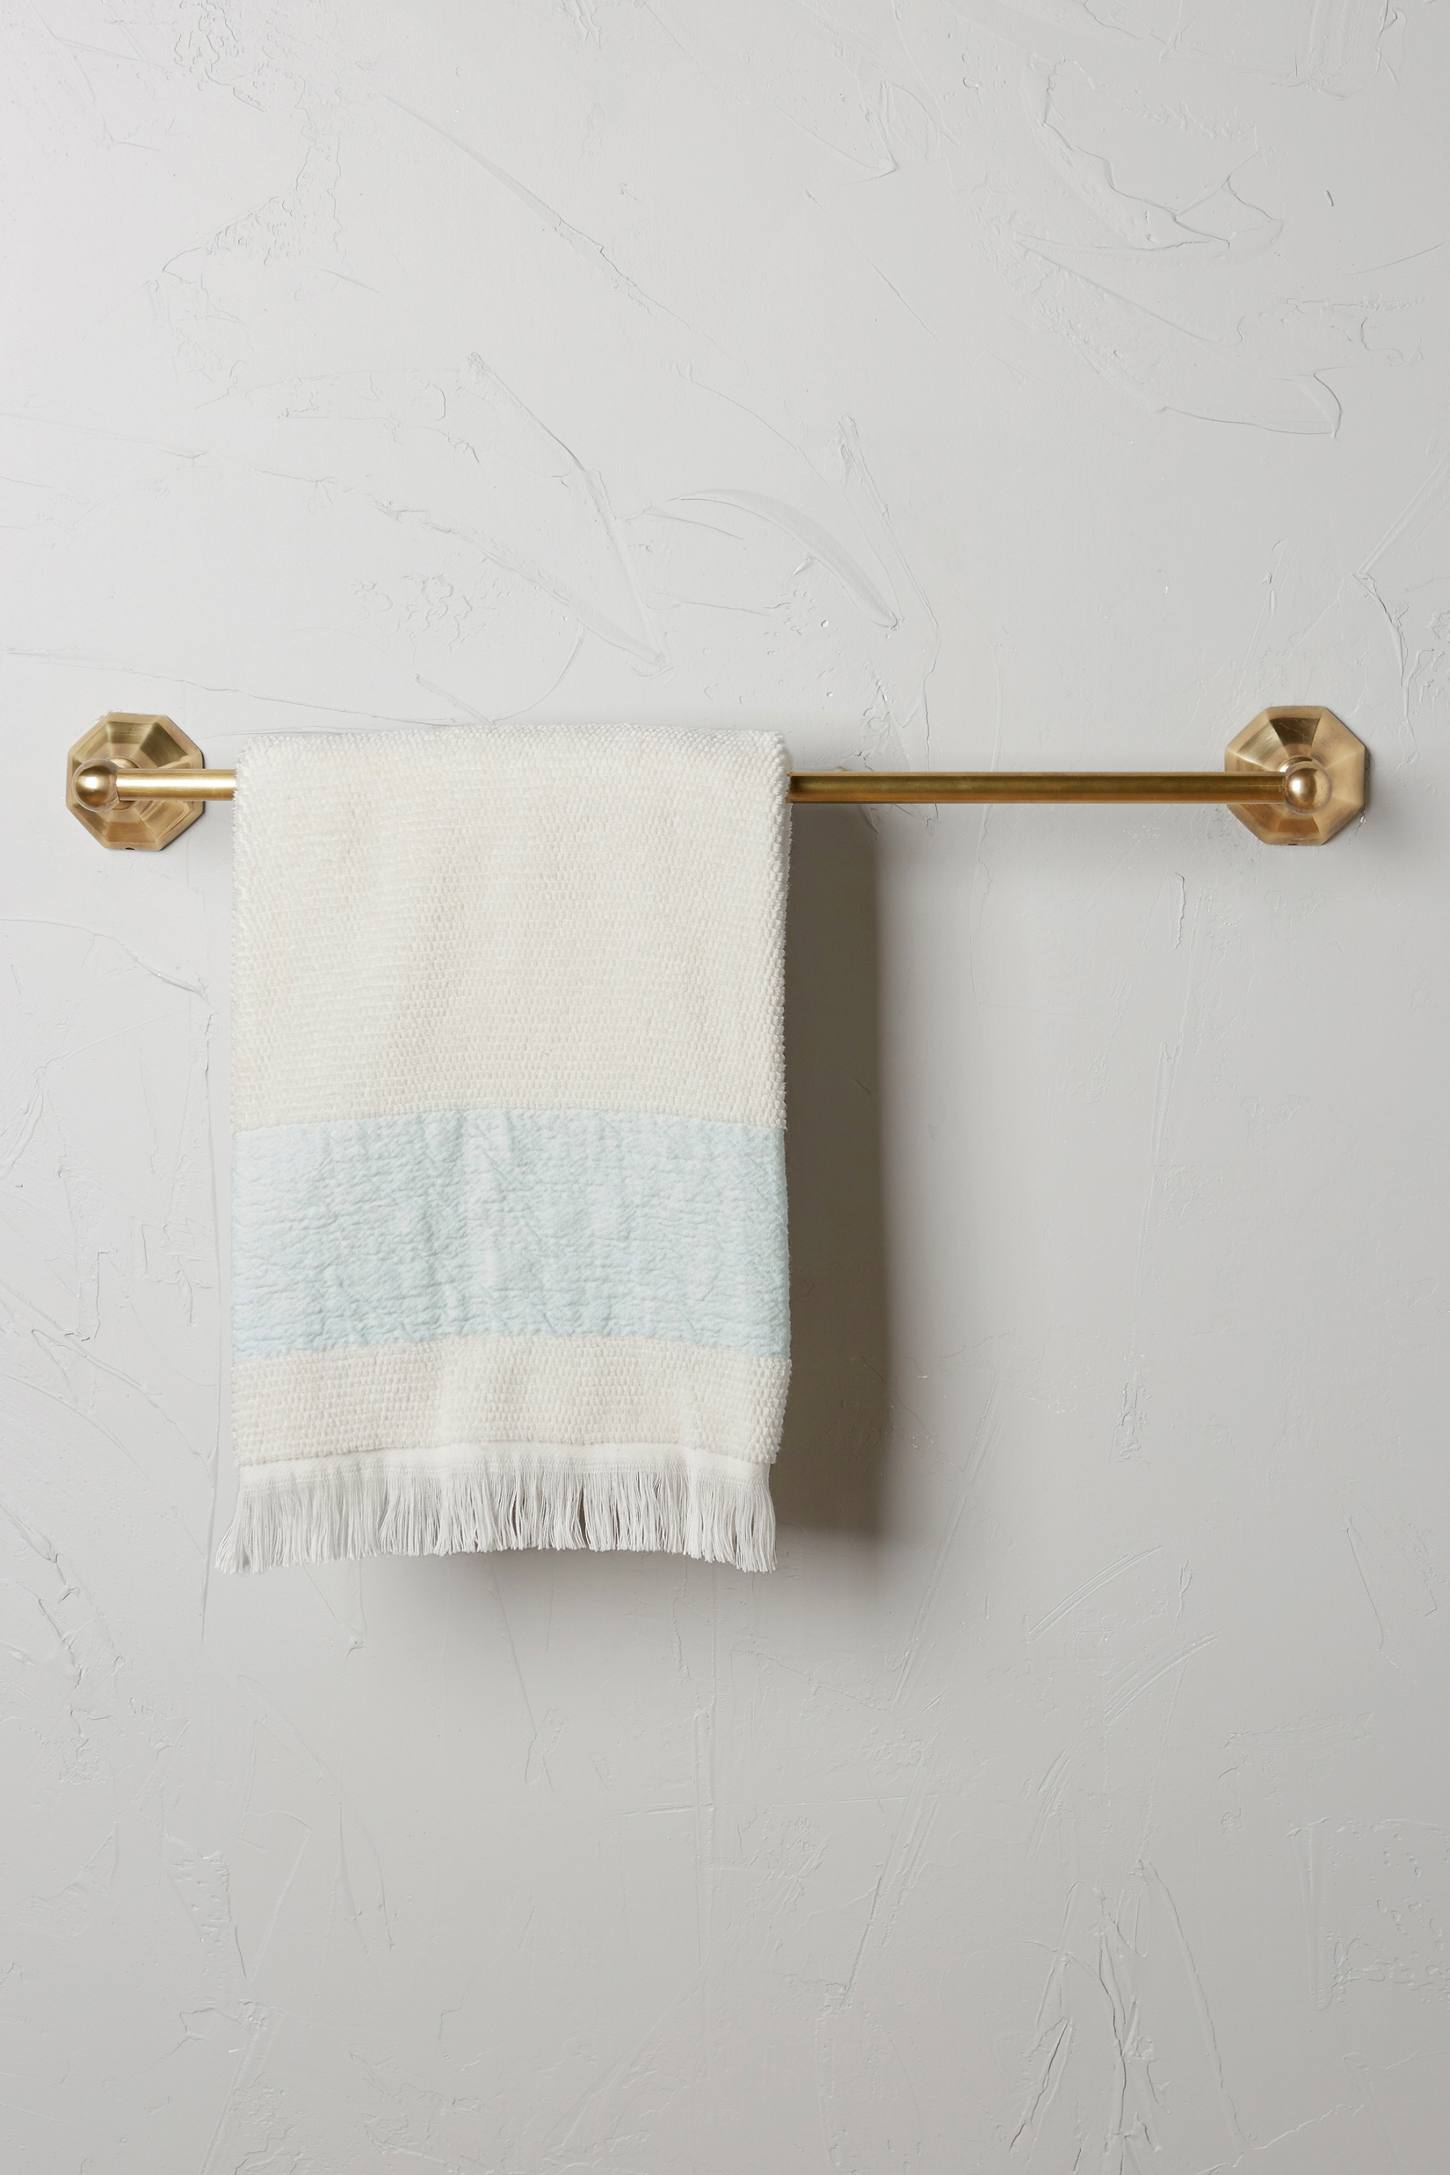 Slide View: 1: Brass Circlet Towel Bar